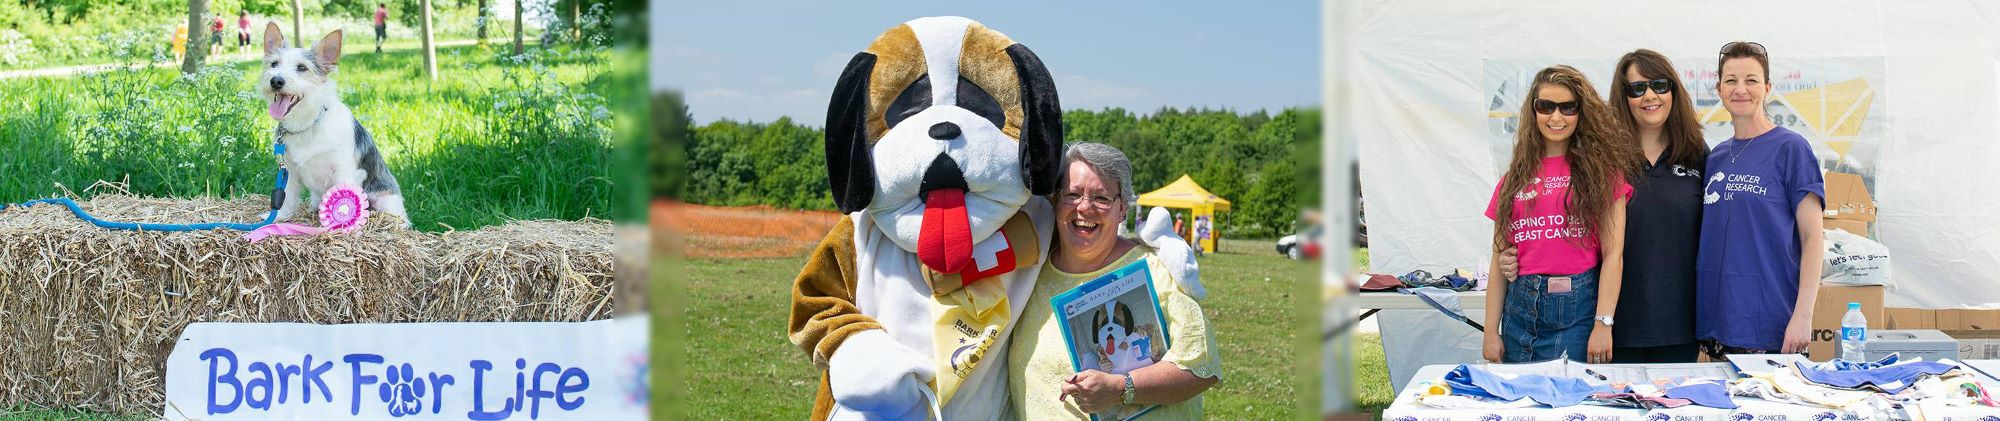 Bark for Life Fundraising Tips